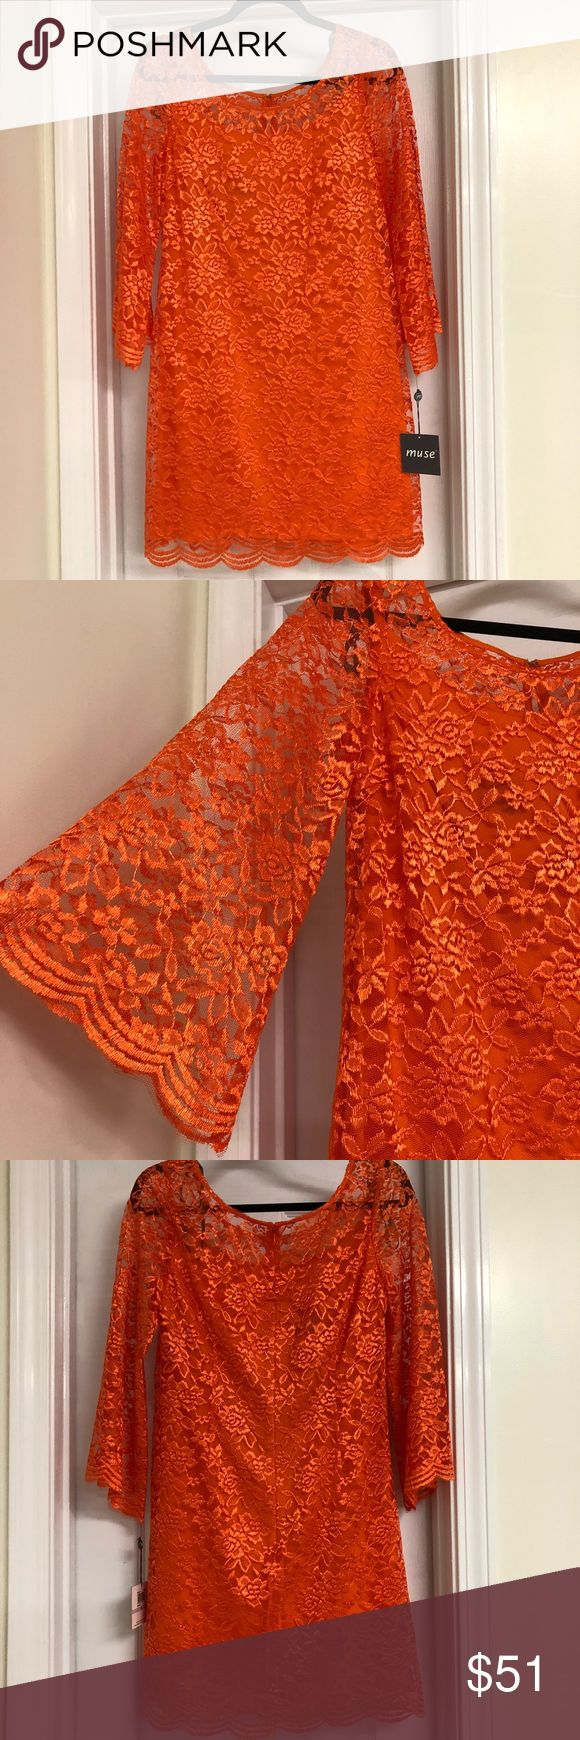 Muse $148 orange lace dress with sleeves, size 6 Muse orange lace sleeved dress. Size 6. Lace overlay over body, with pure lace sleeves. Sleeves reach about mid-forearm. Perfect dress for any special occasion! *Please ask any questions before purchase. No returns* Muse Dresses Long Sleeve